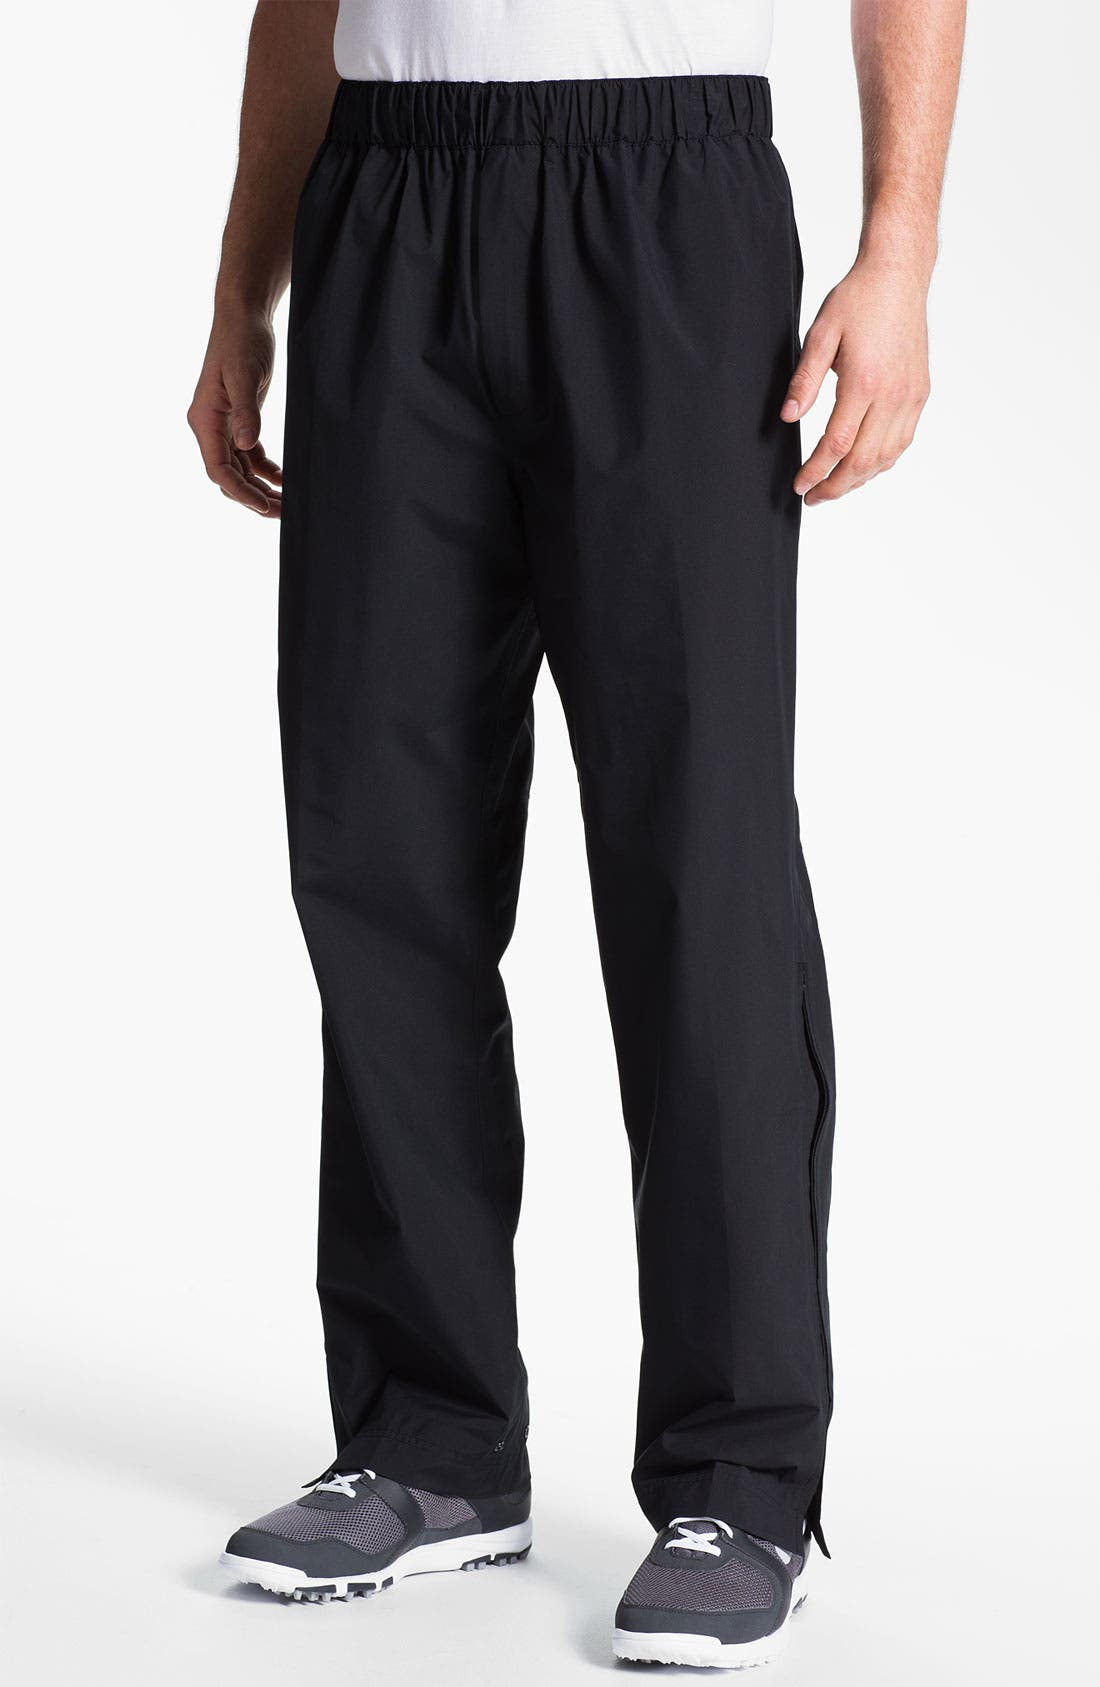 Alternate Image 1 Selected - Zero Restriction 'Qualifier' All Weather Golf Pants